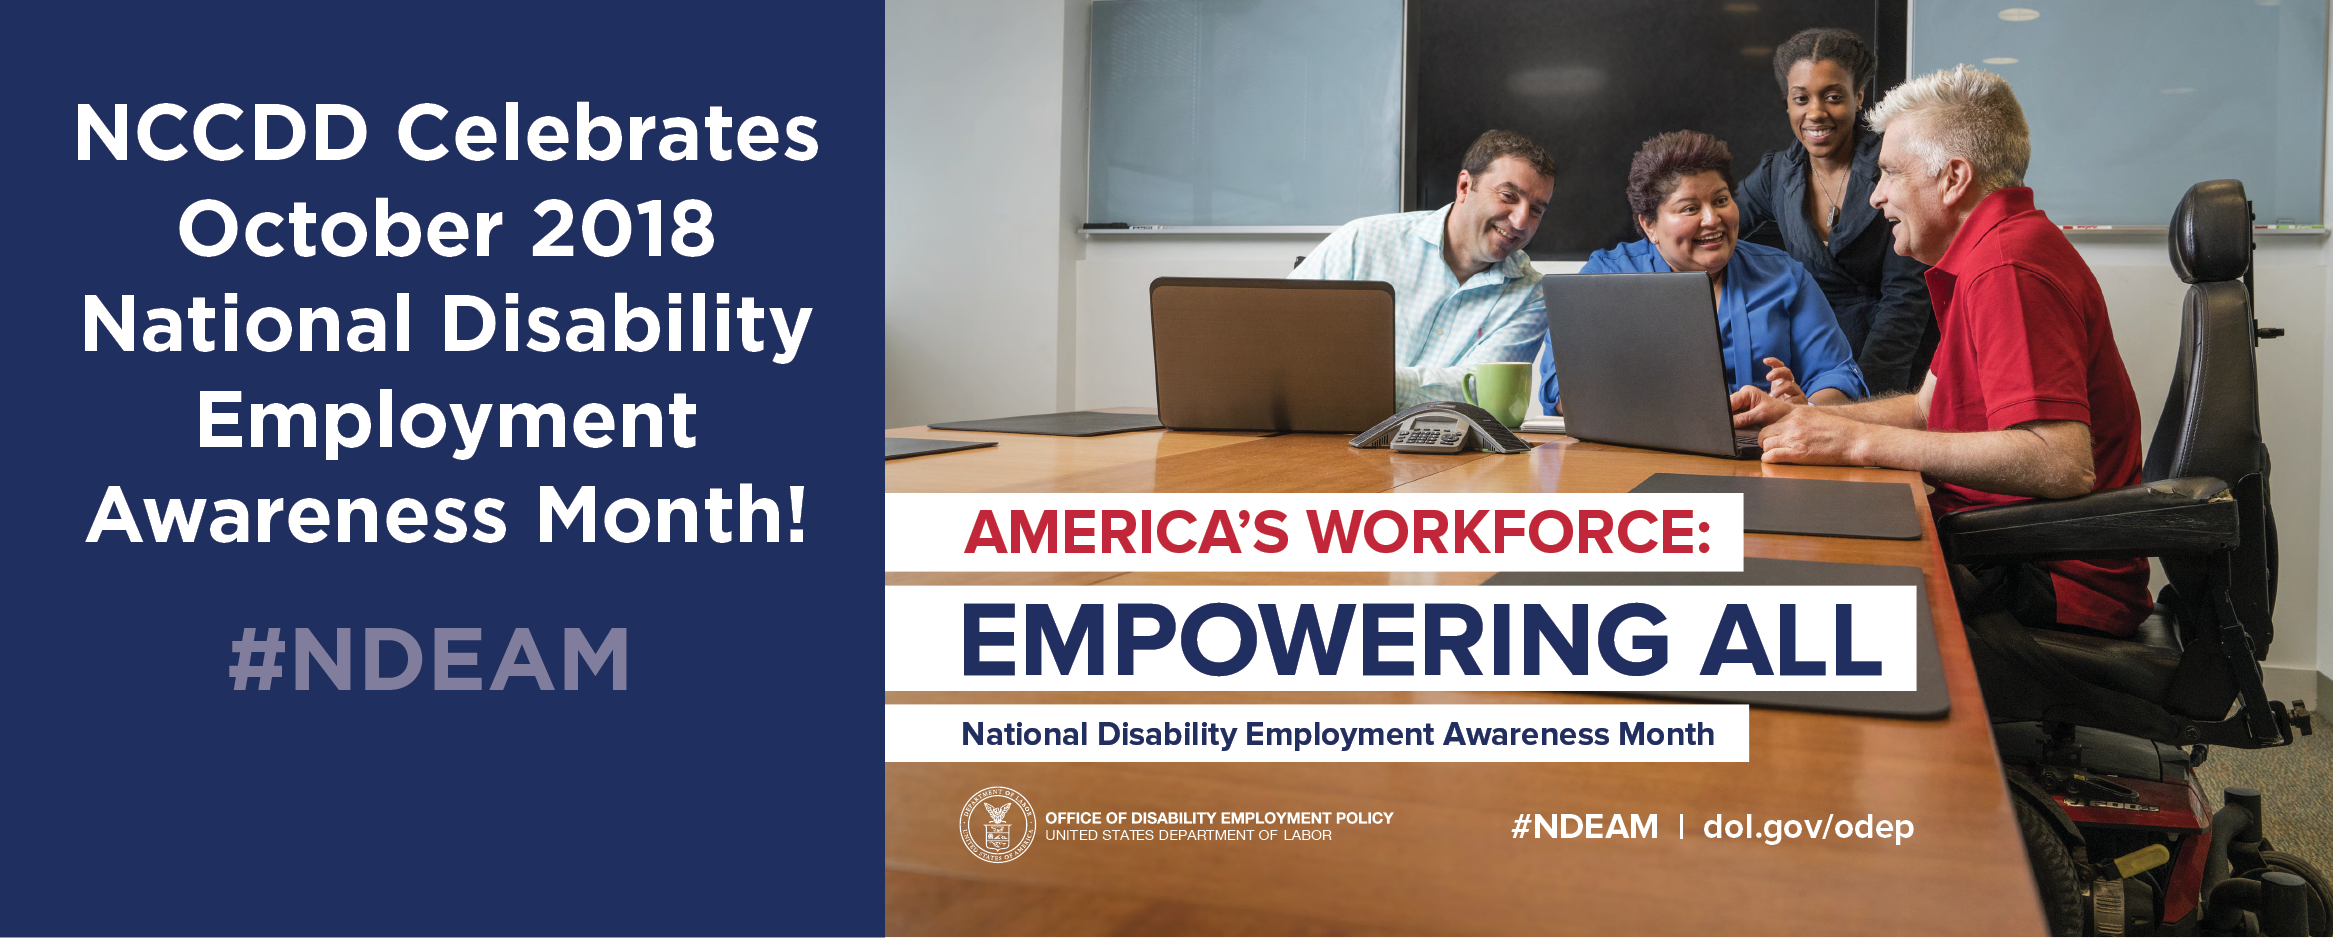 Celebrate National Disability Employment Awareness Month October 2018, #NDEAM